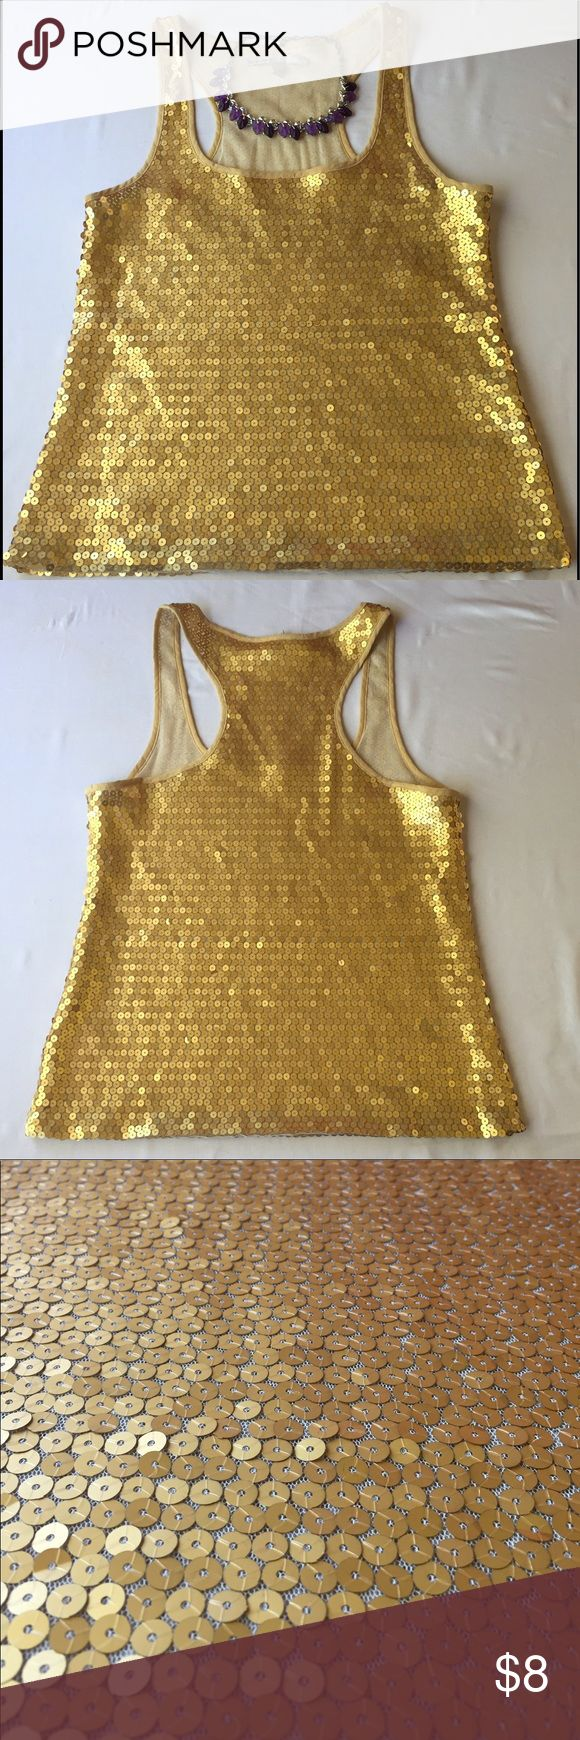 $$ Old Navy Gold Sequin Tank Top, SM Catch eyes with this Old Navy Gold Sequin Tank Top, SM. Great for a party or just a night out, this tank is sure to make you sparkle ✨ In great condition, no defects and comes from a smoke-free environment. Old Navy Tops Tank Tops